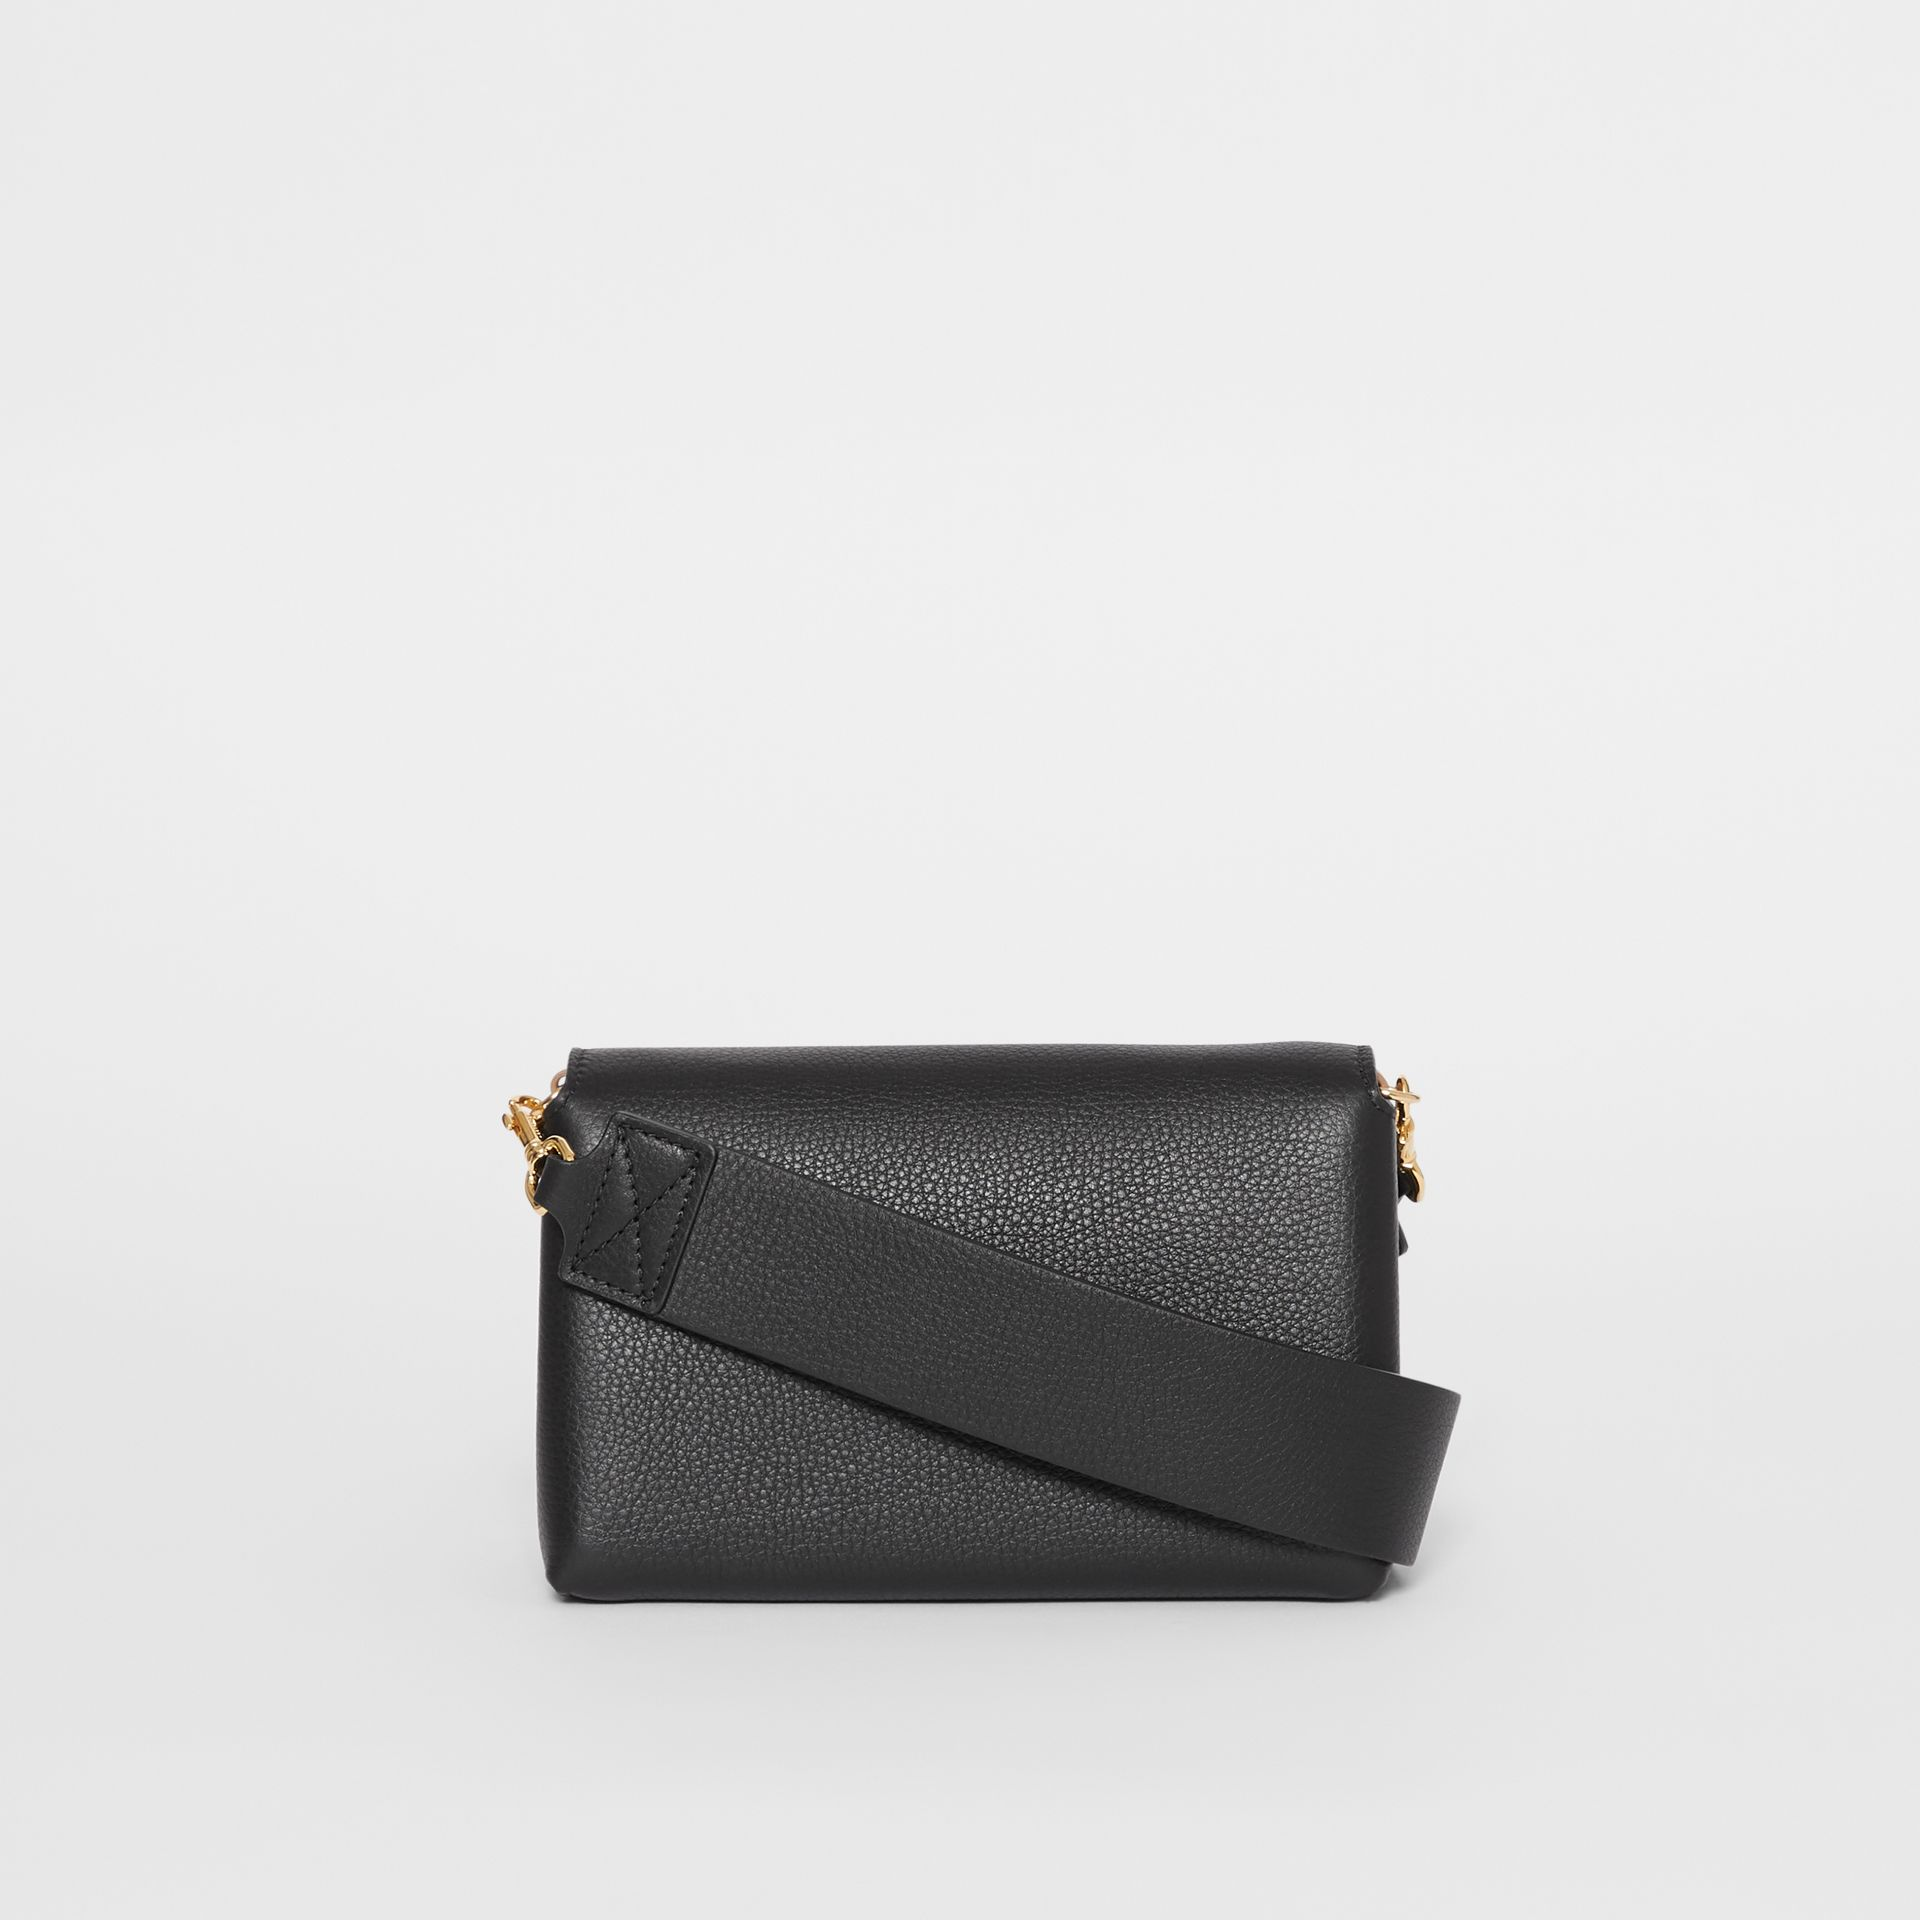 Small Grainy Leather Crossbody Bag in Black - Women | Burberry - gallery image 7